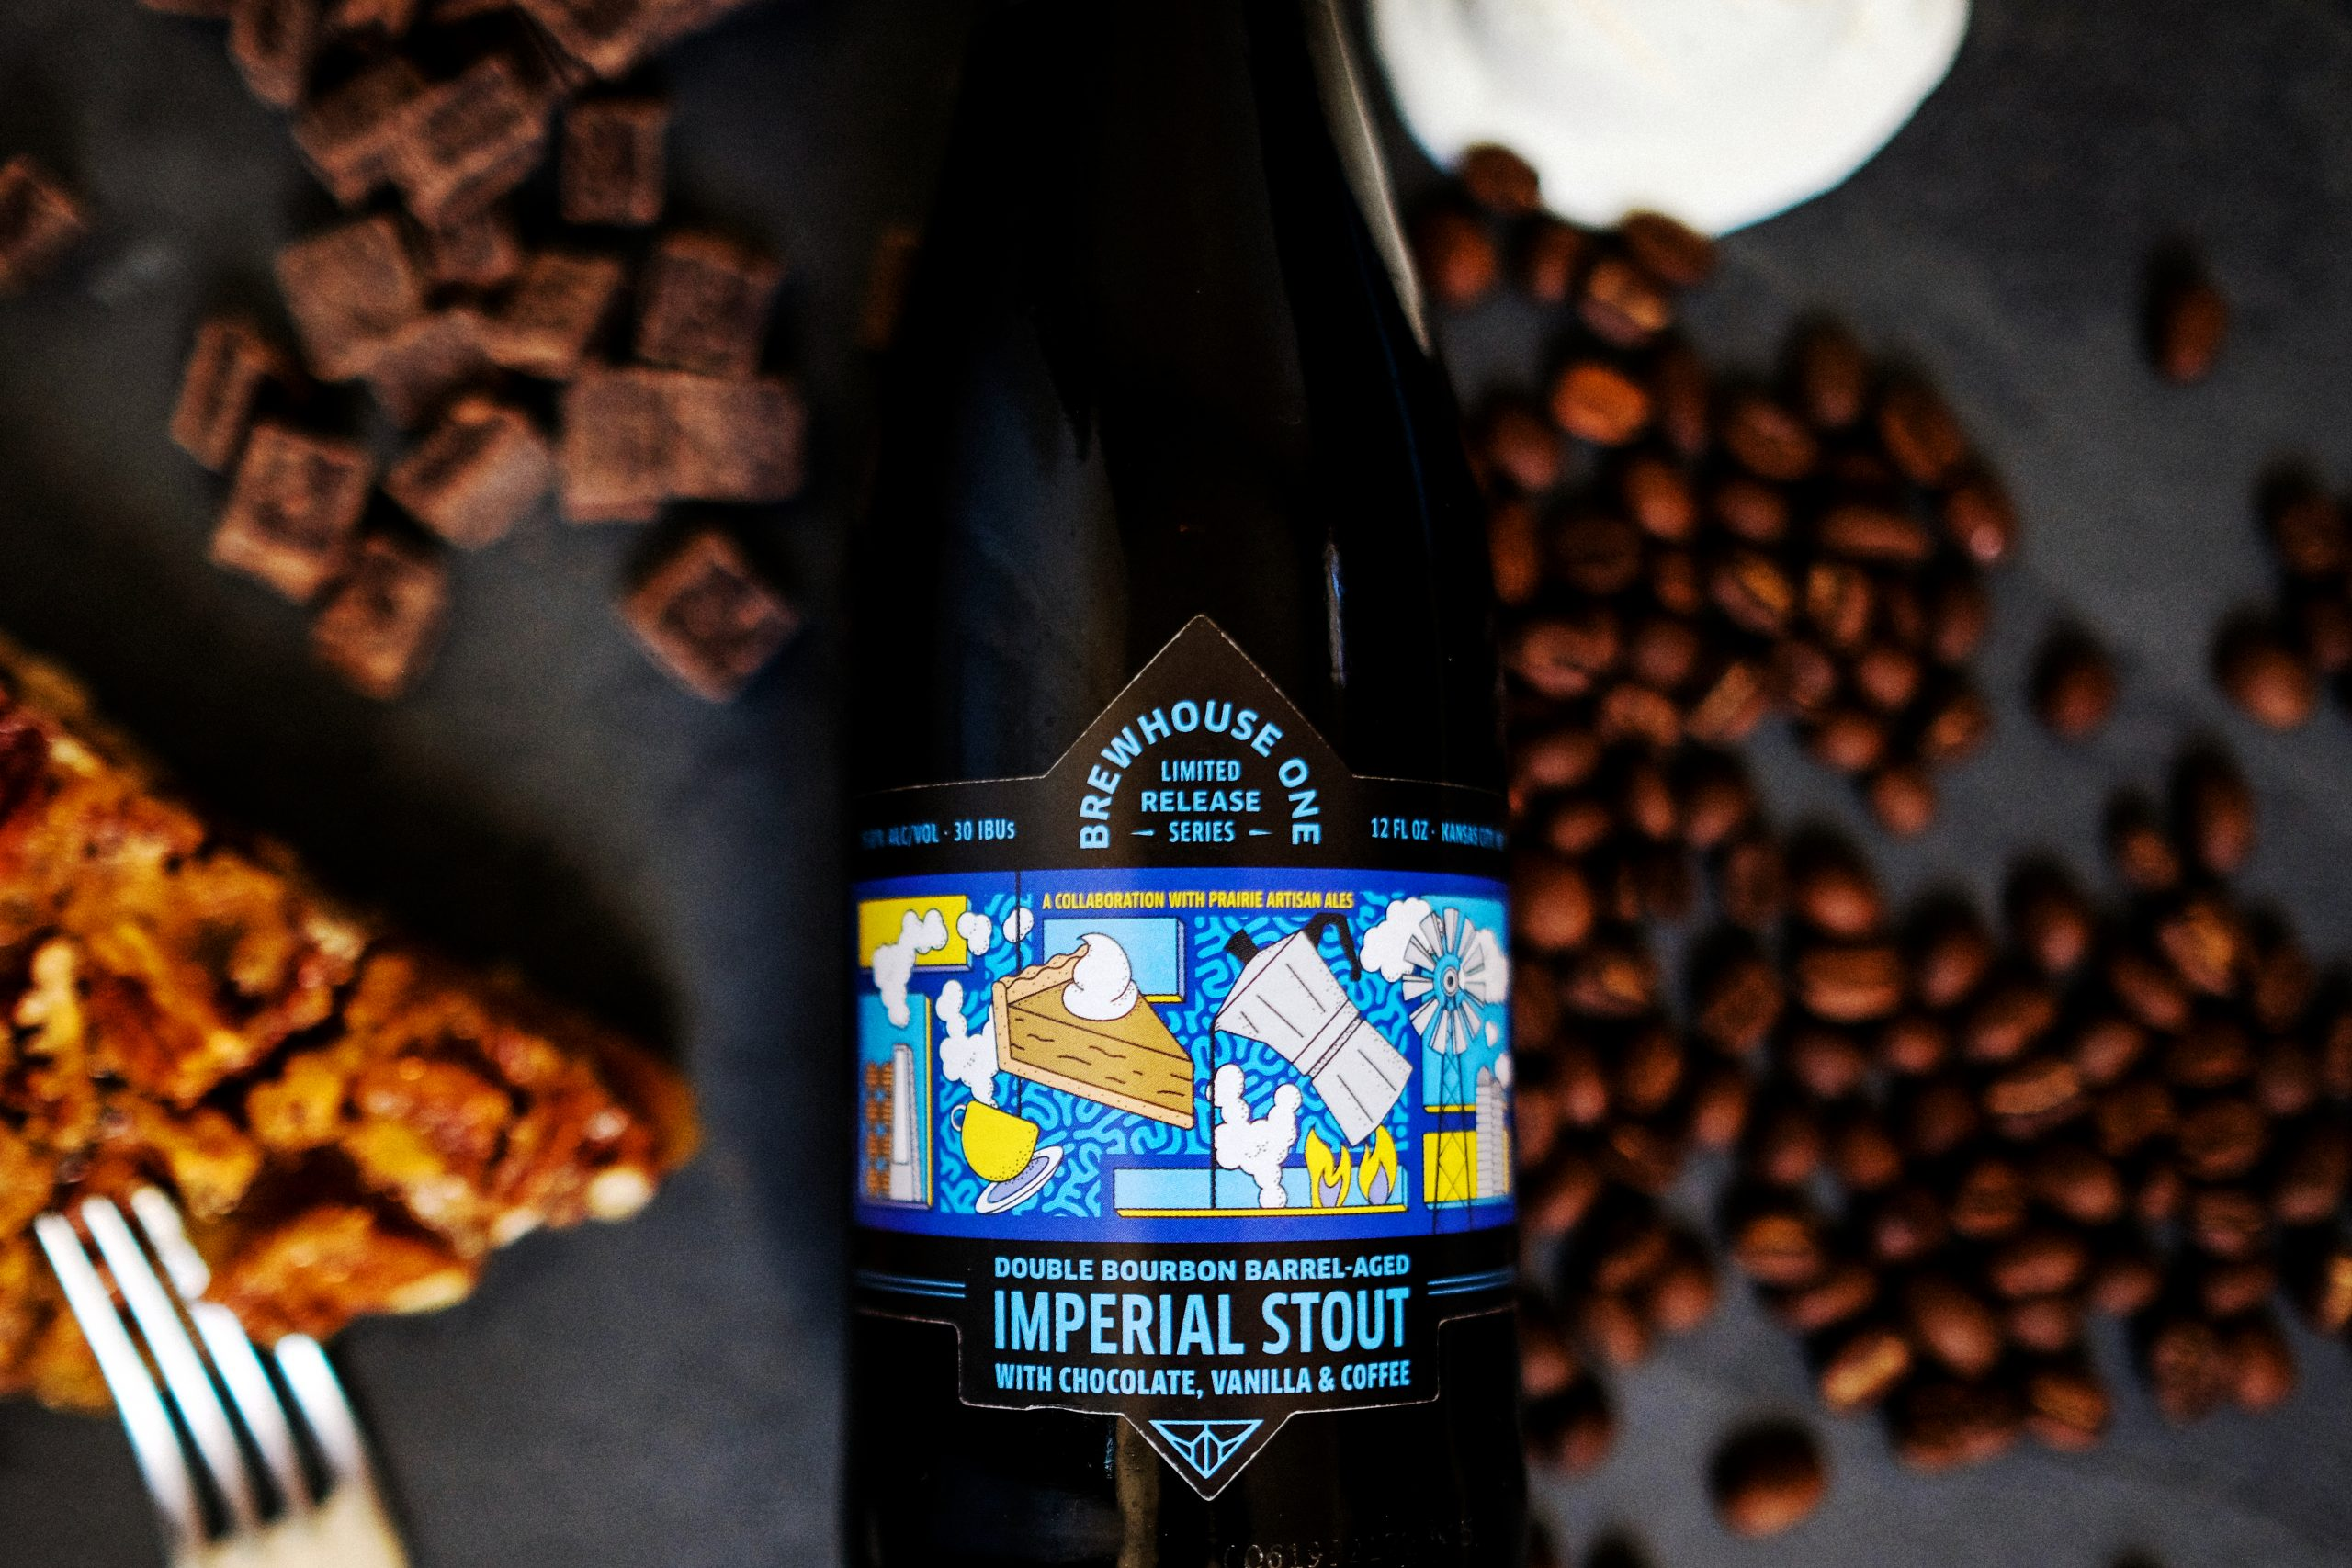 Double Bourbon Barrel-Aged Imperial Stout with Chocolate, Vanilla & Coffee